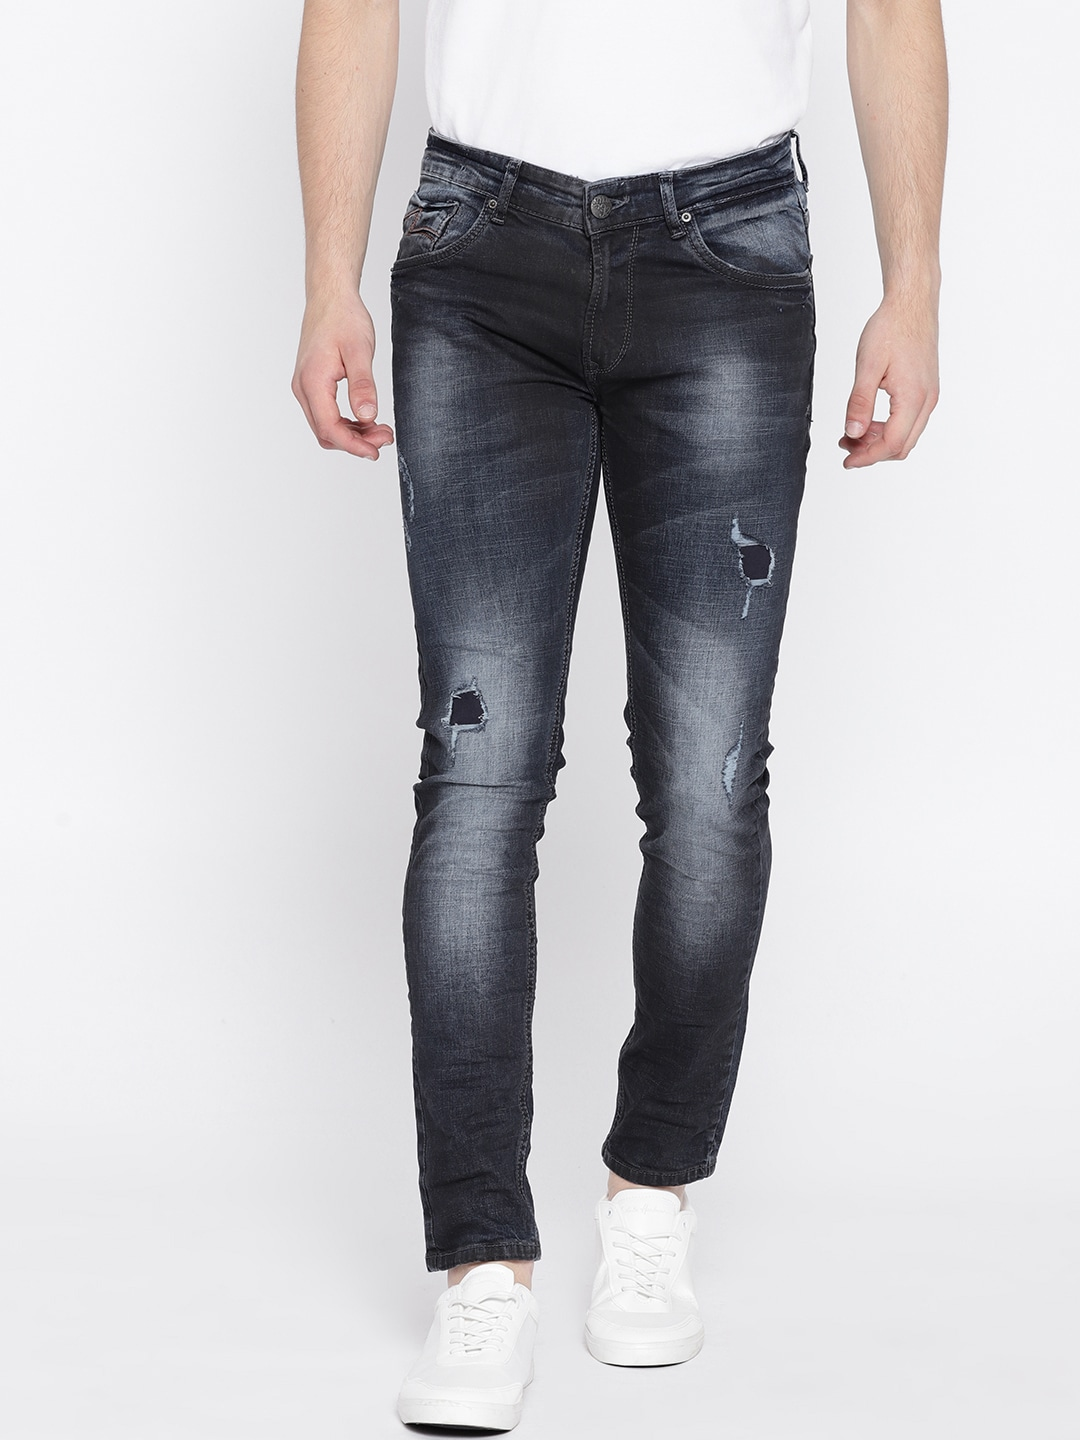 b1a5f1d9e91 Spykar Ripped Jeans Leggings - Buy Spykar Ripped Jeans Leggings online in  India